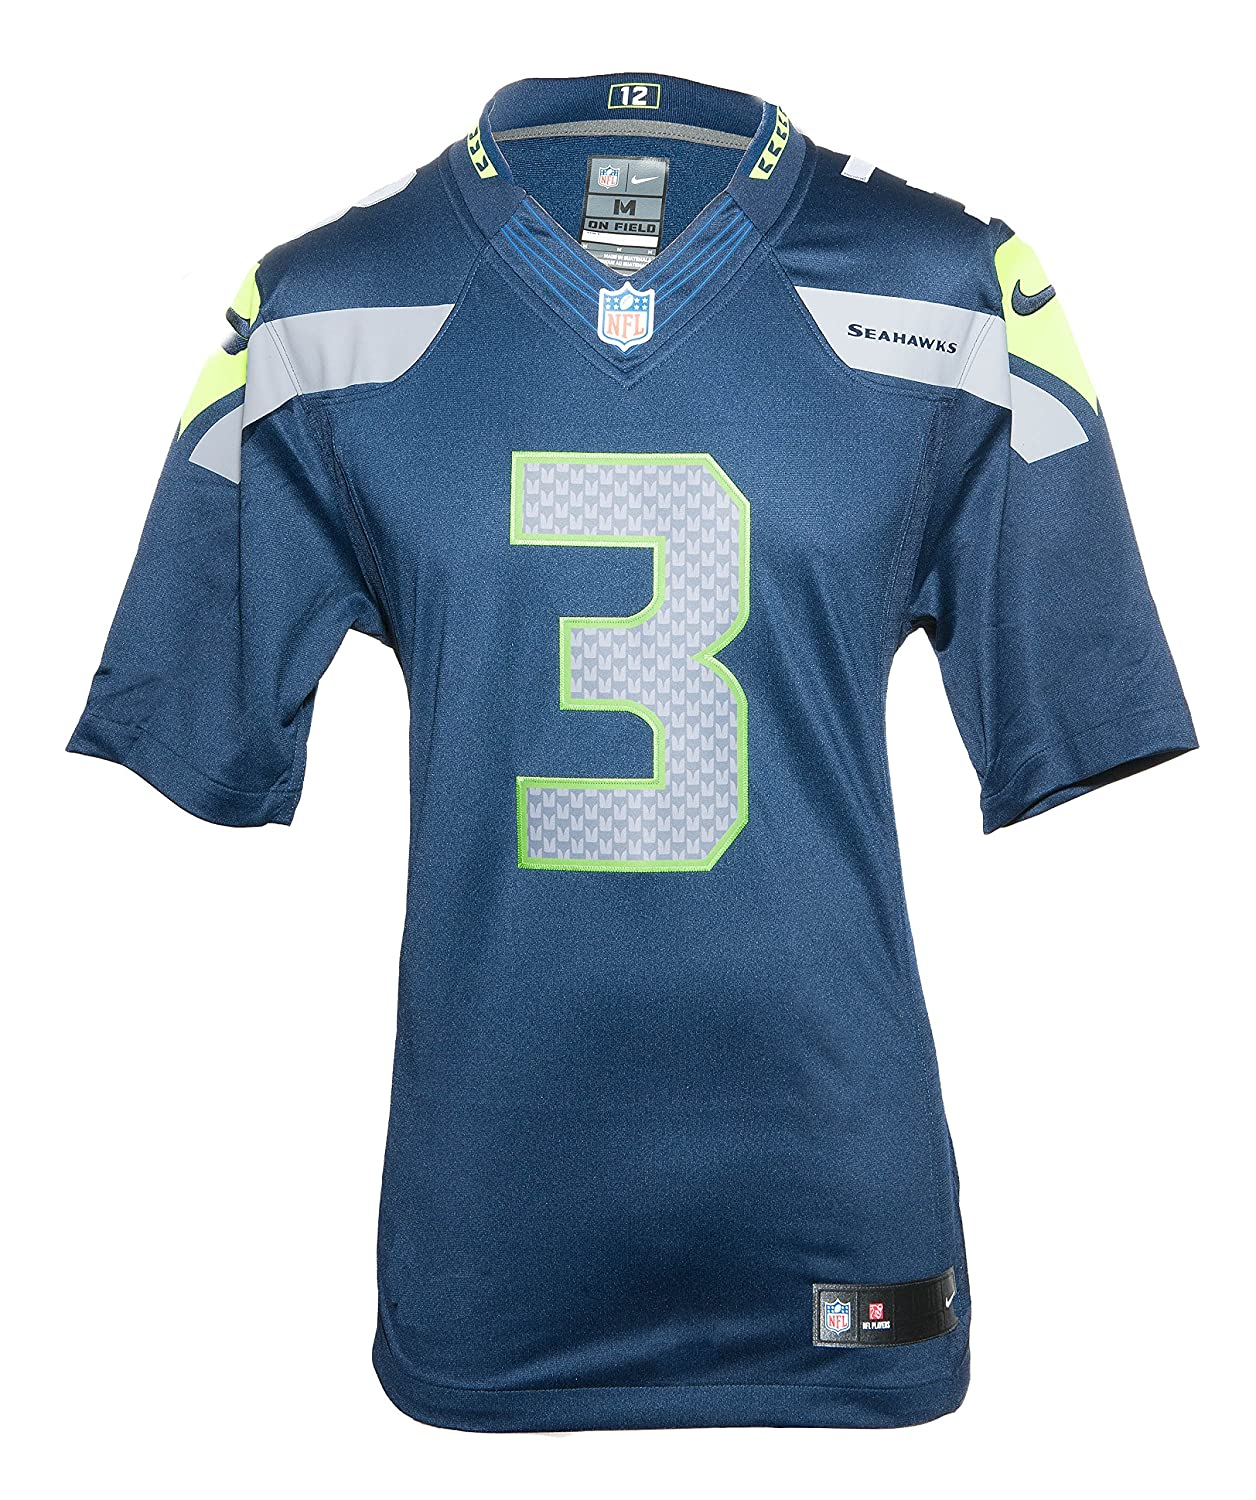 buy popular 5dc51 97051 Nike NFL Men's Seattle Seahawks Russell Wilson Stitched Limited Jersey -  Navy